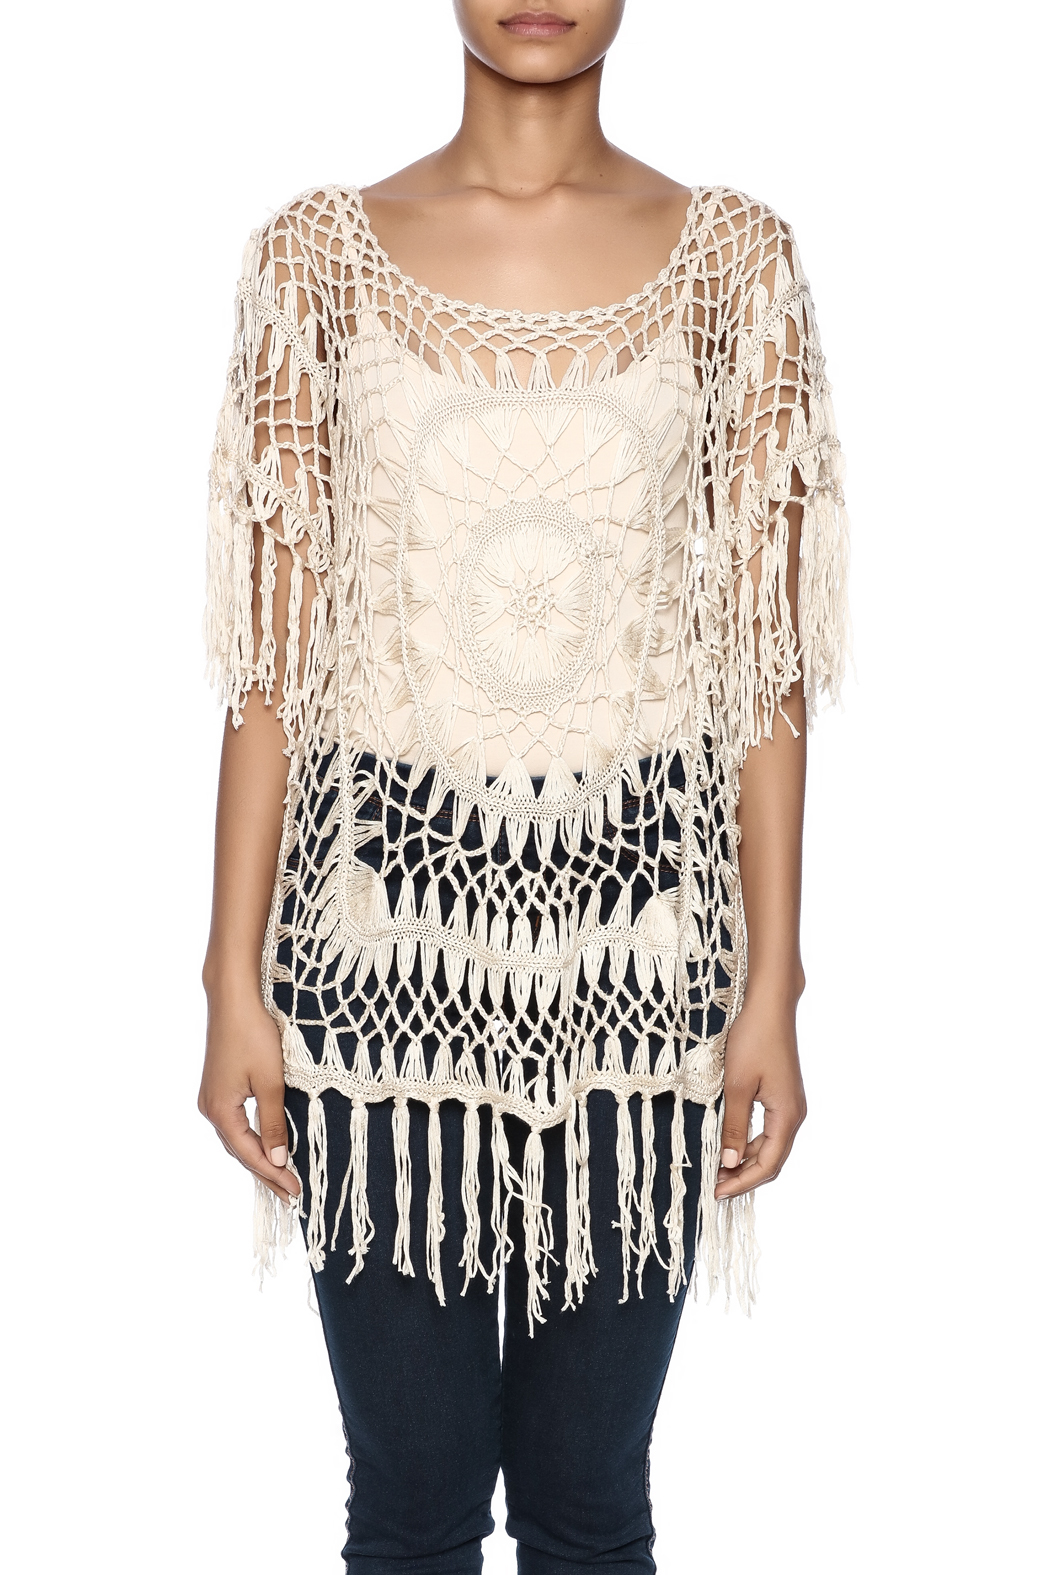 India Boutique Exquisite Crochet Top - Side Cropped Image